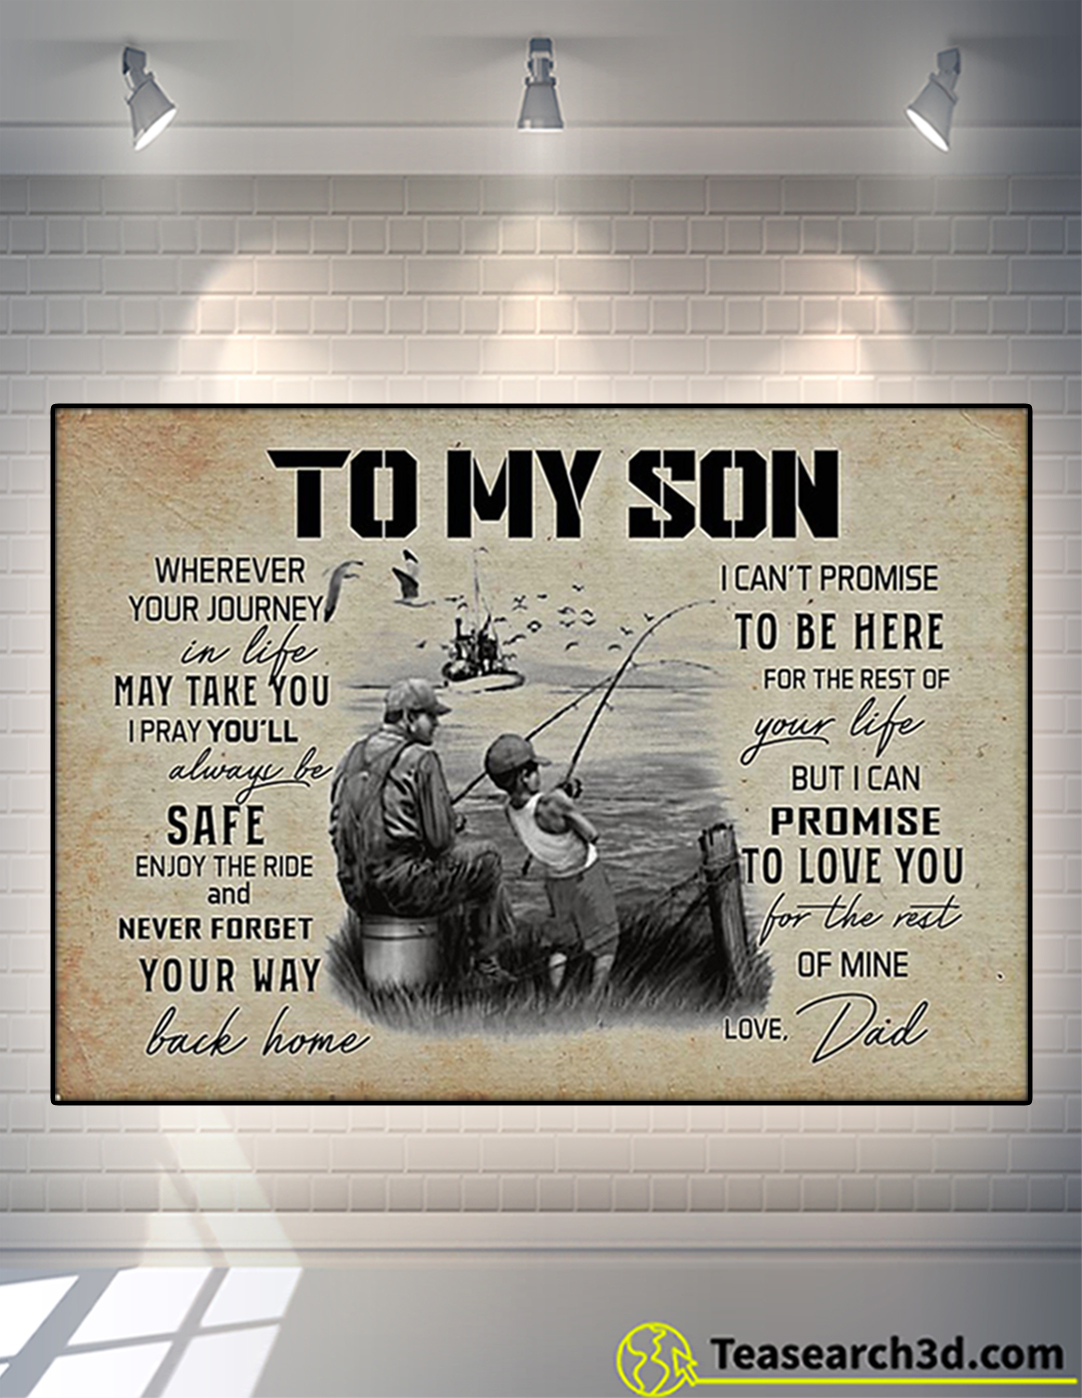 Fishing to my son wherever your journey in life poster A2